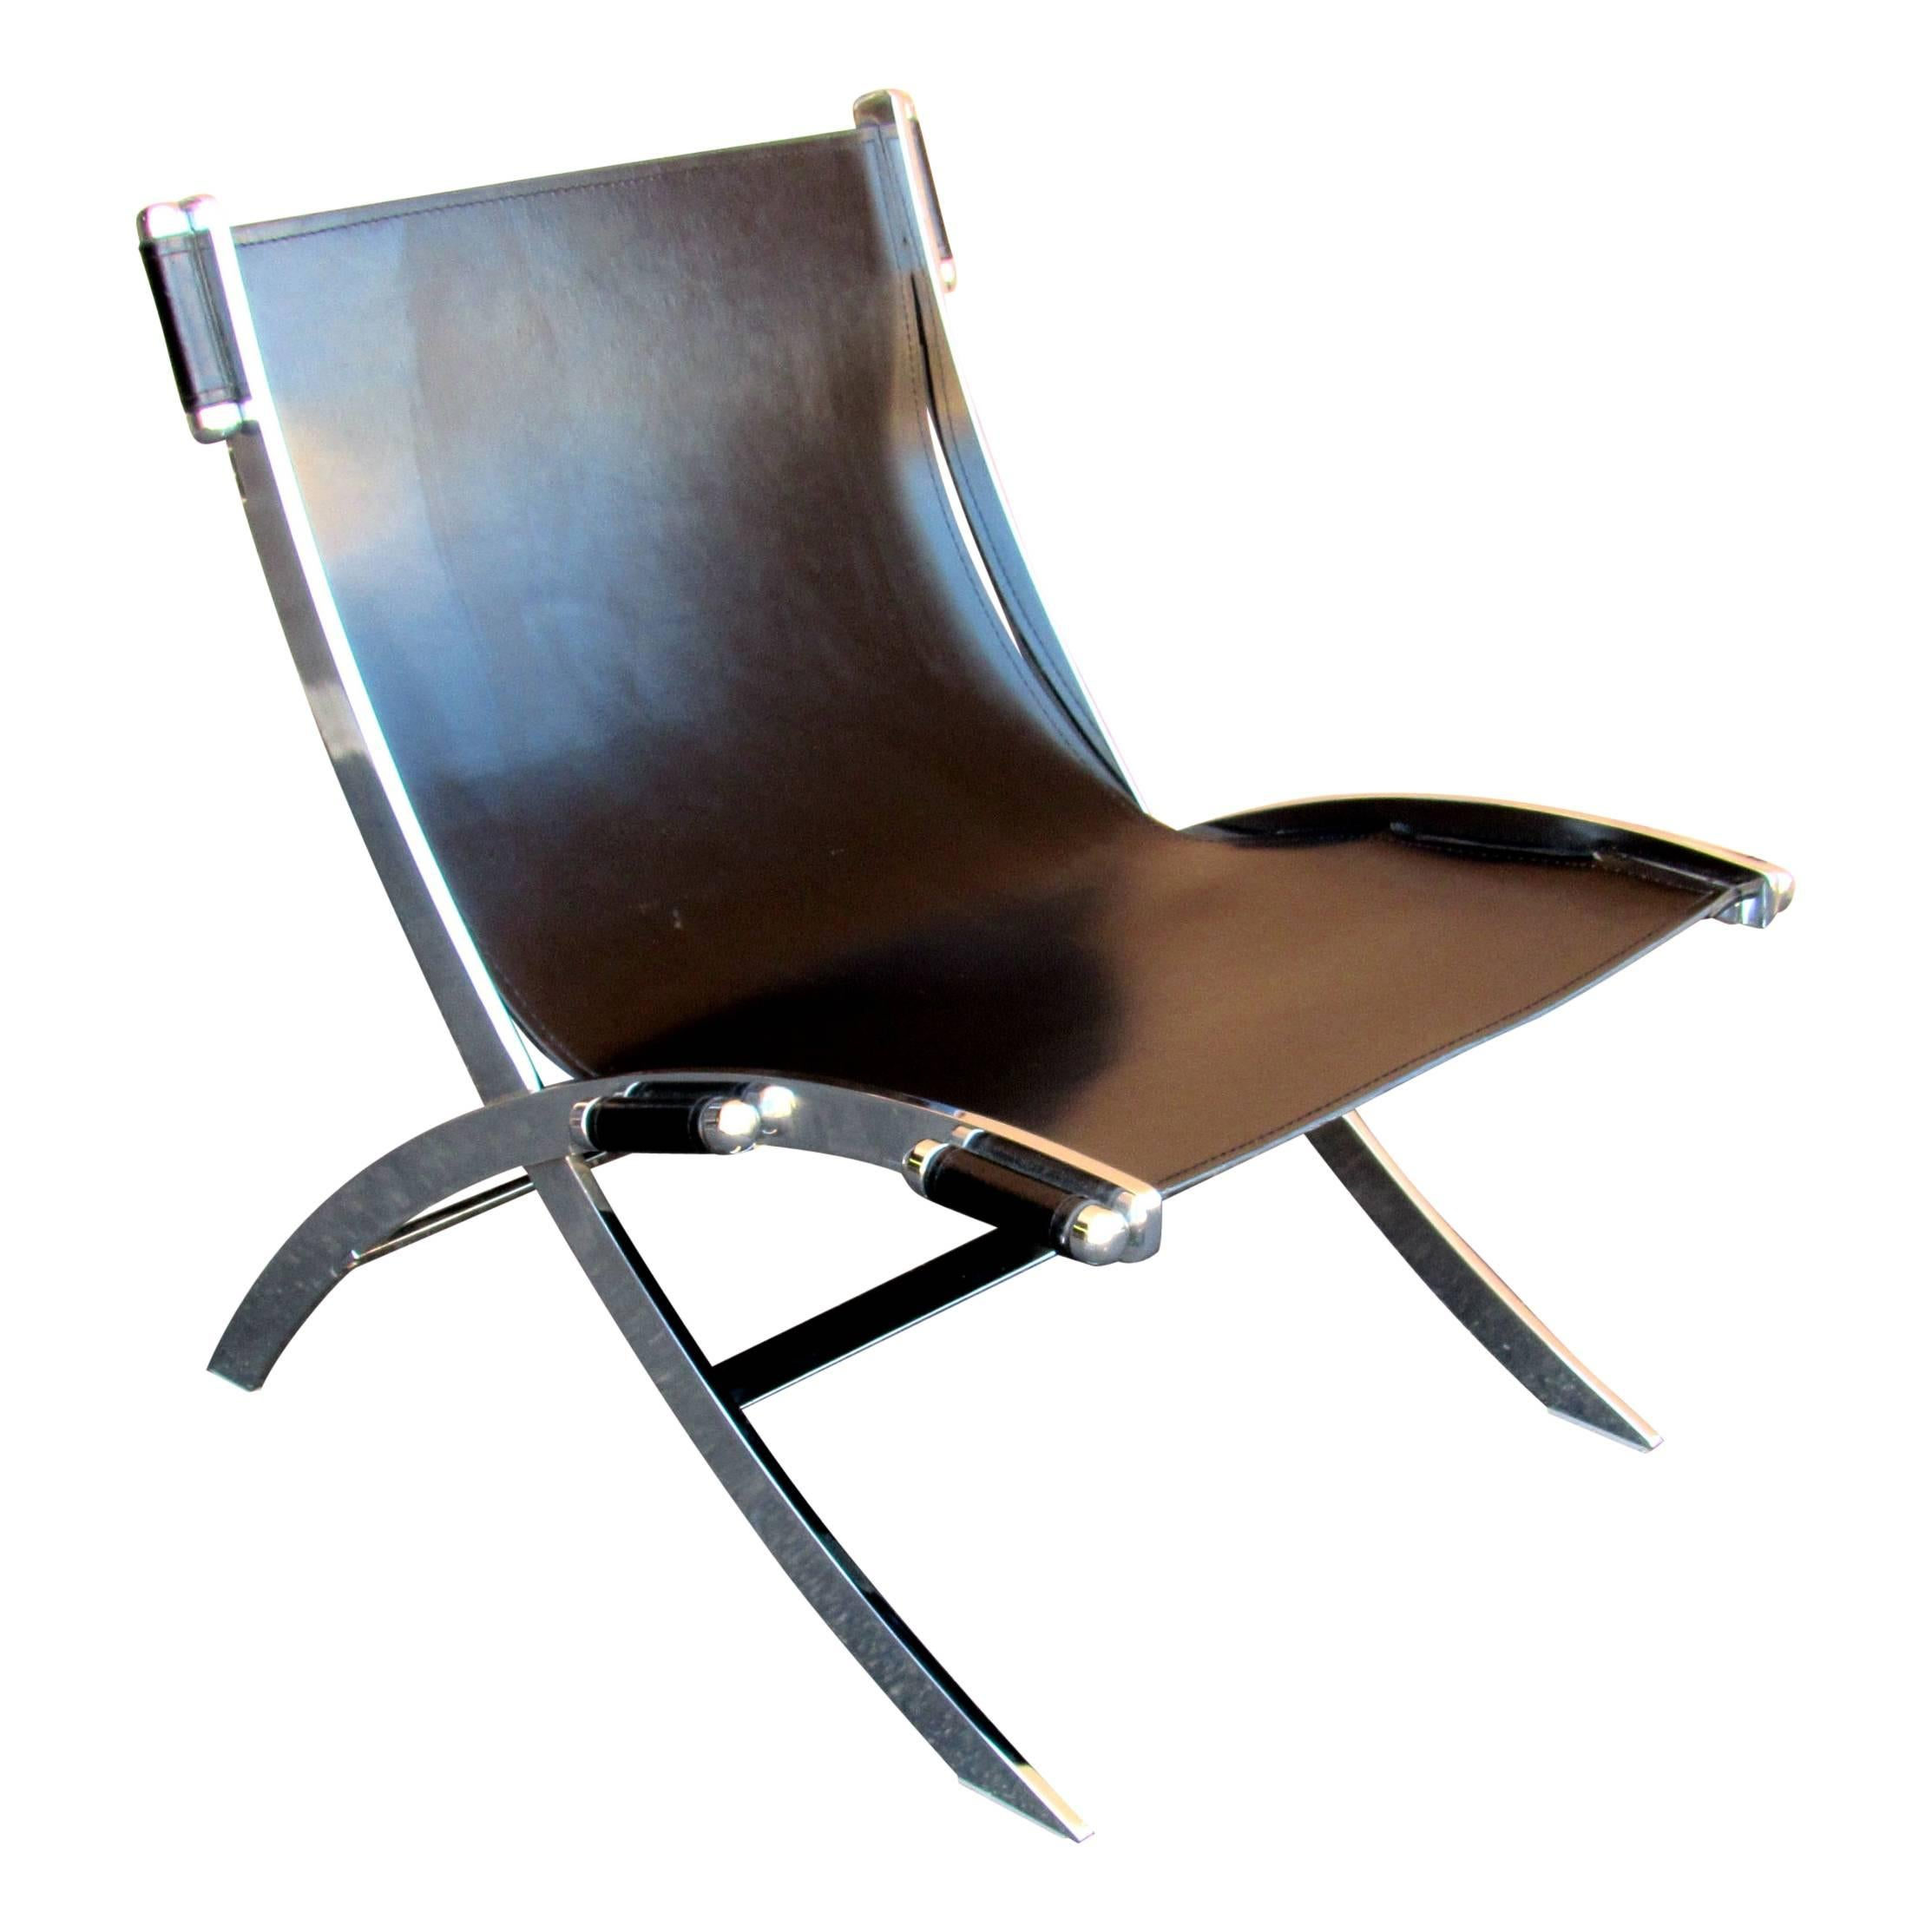 leather chairs of homestead seattle sling chair norway mc copy products westnofa bruksbo